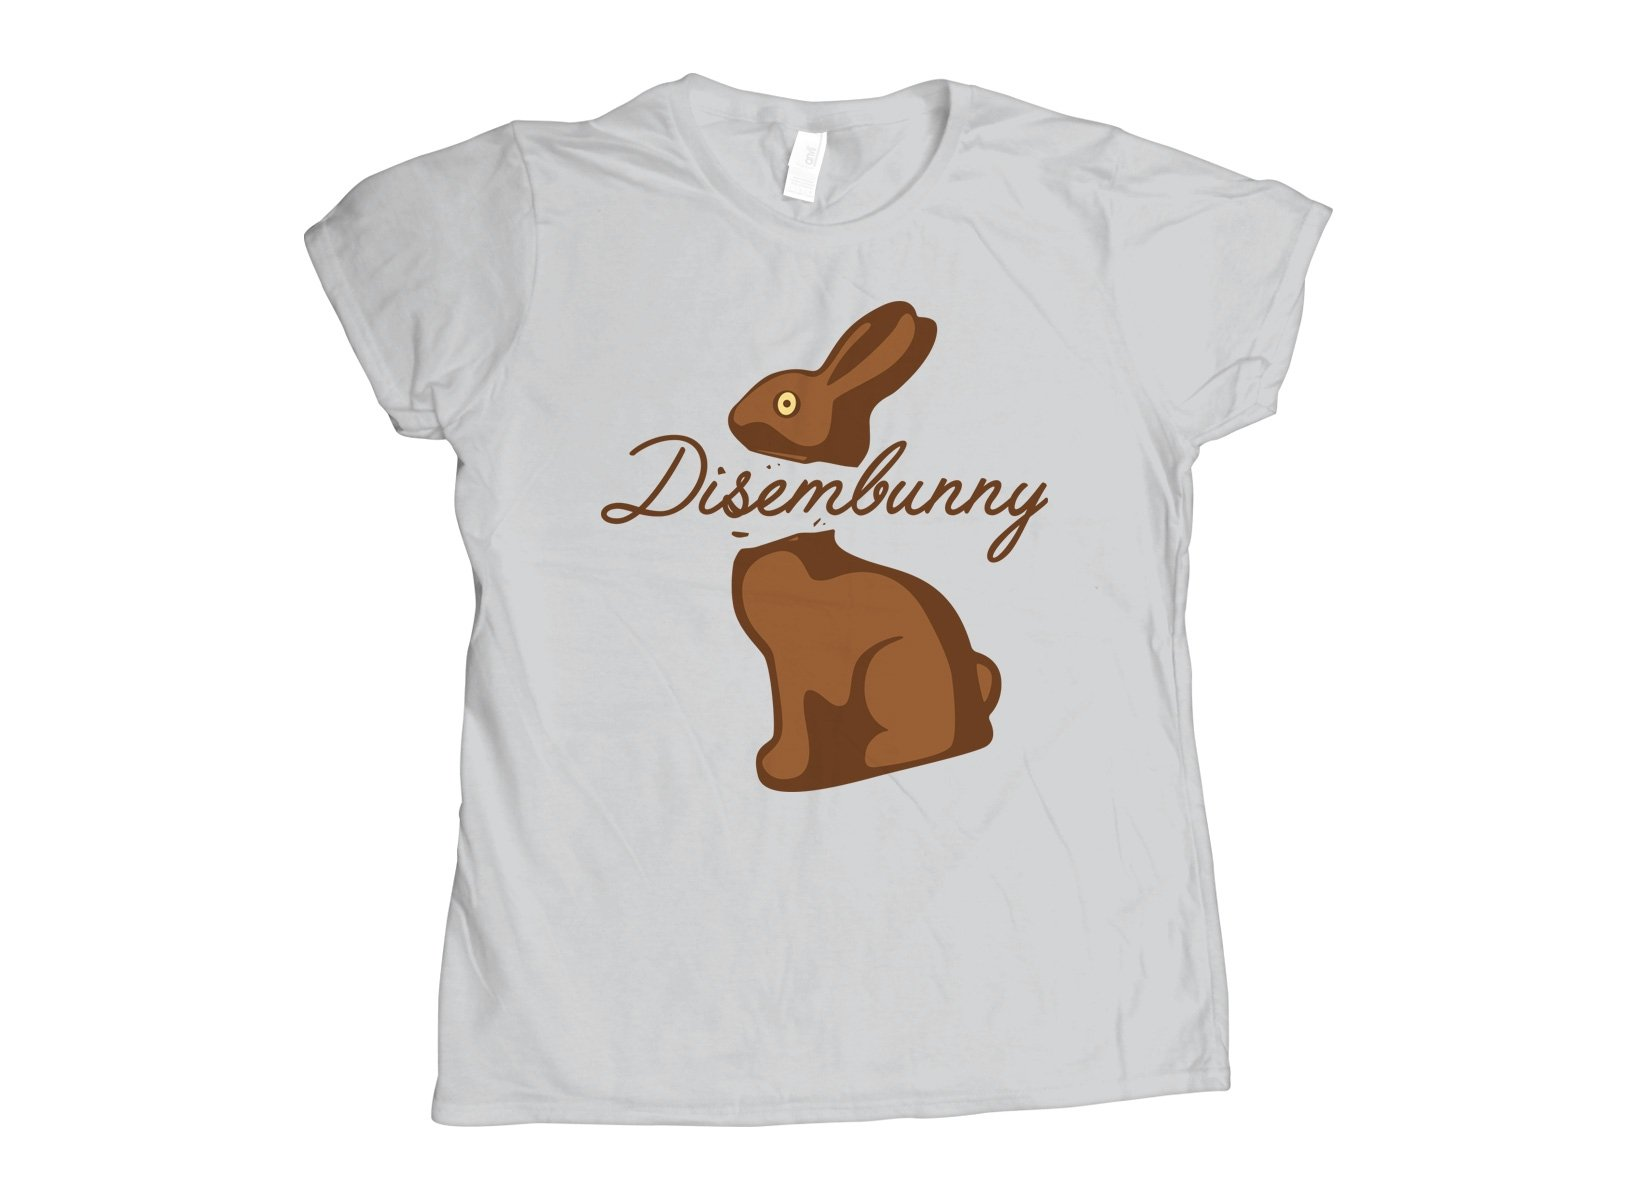 Disembunny on Womens T-Shirt